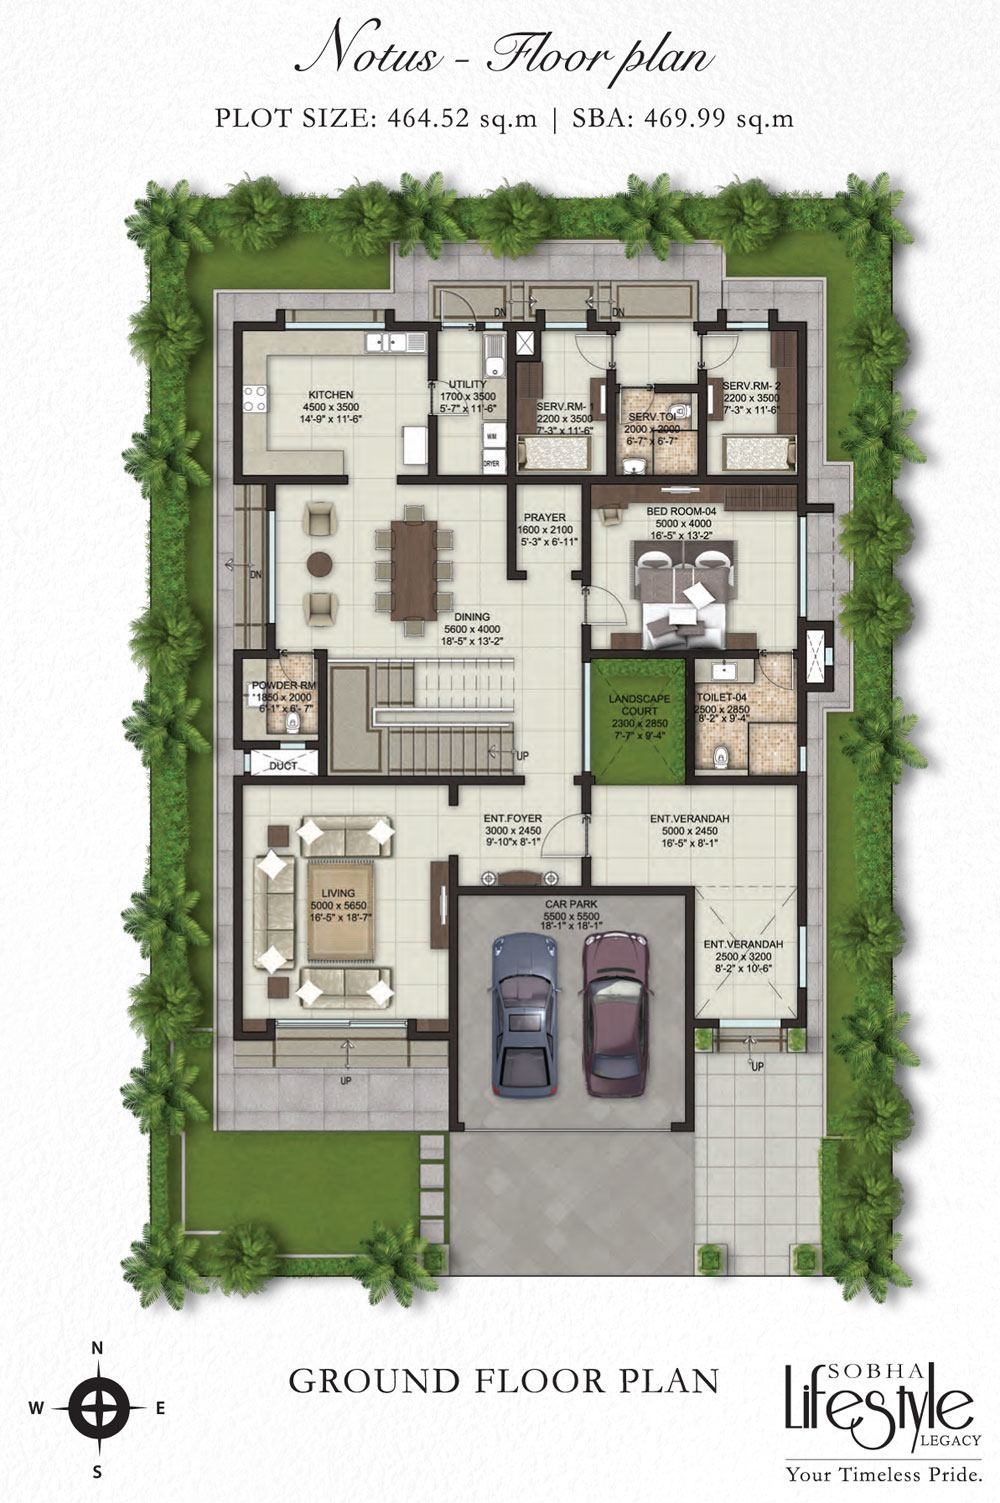 Sobha lifestyle legacy 4 bedroom villas bangalore for Villa designs and floor plans